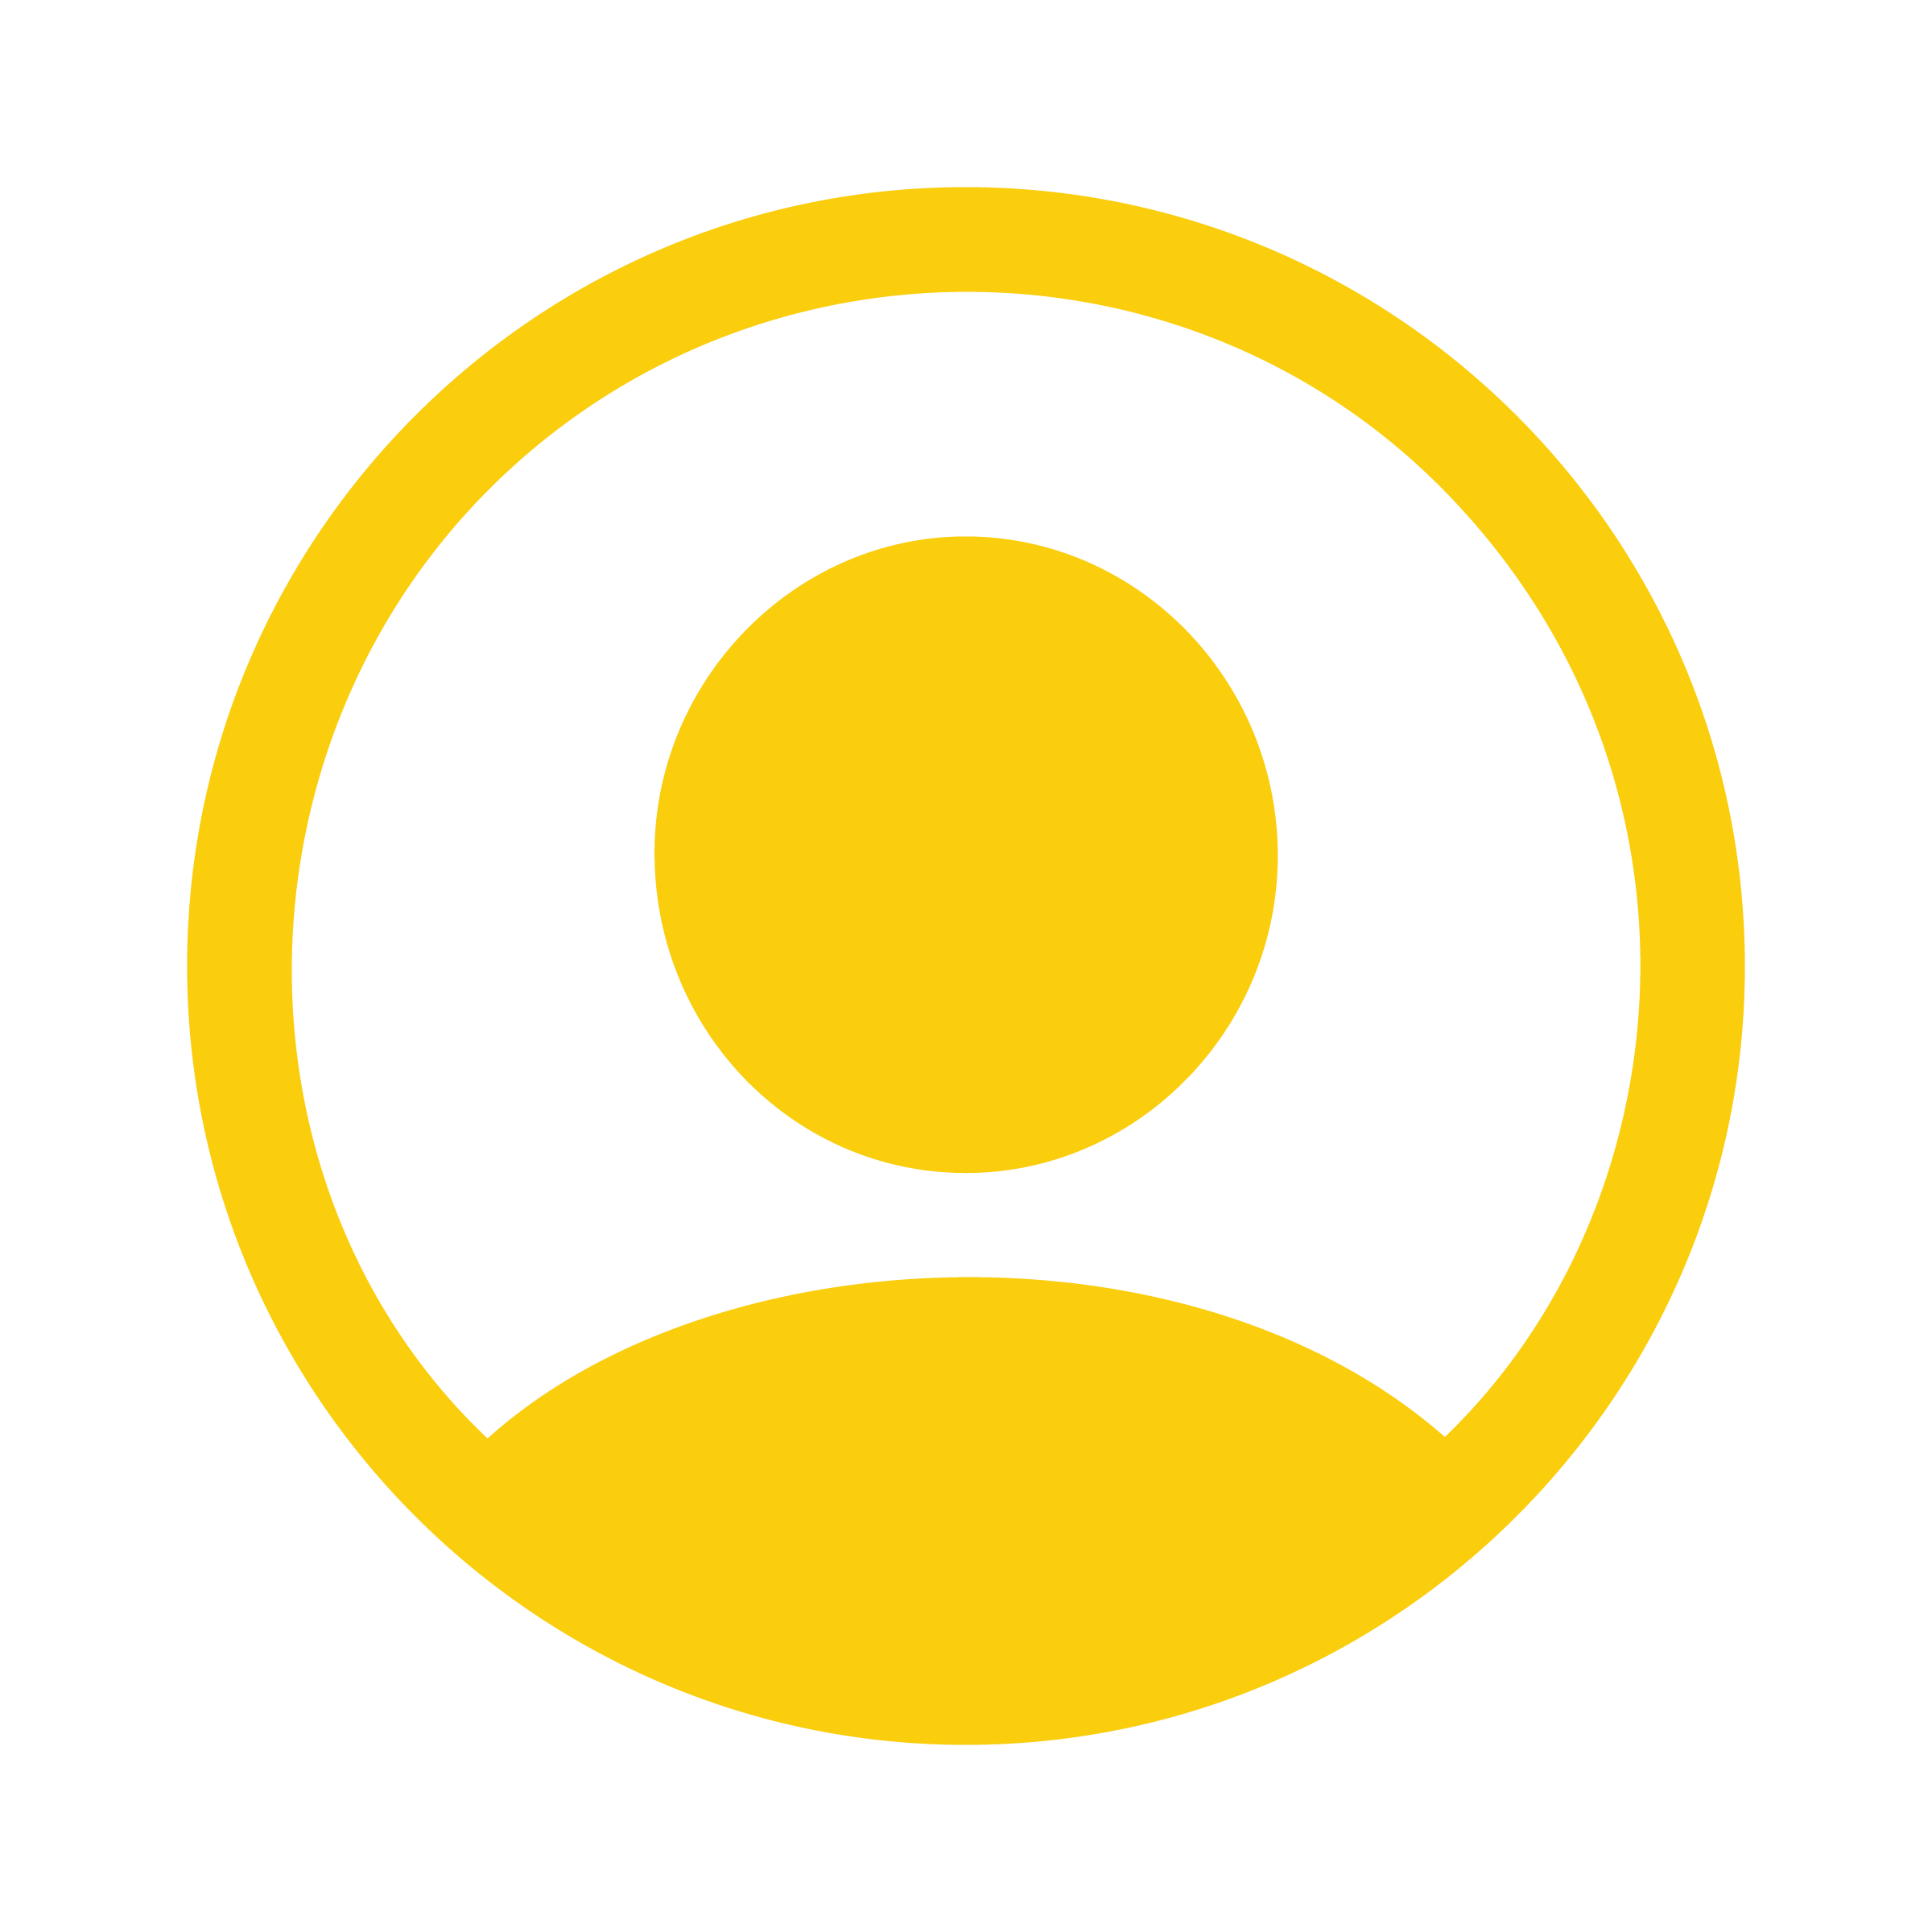 user-icon-01.png